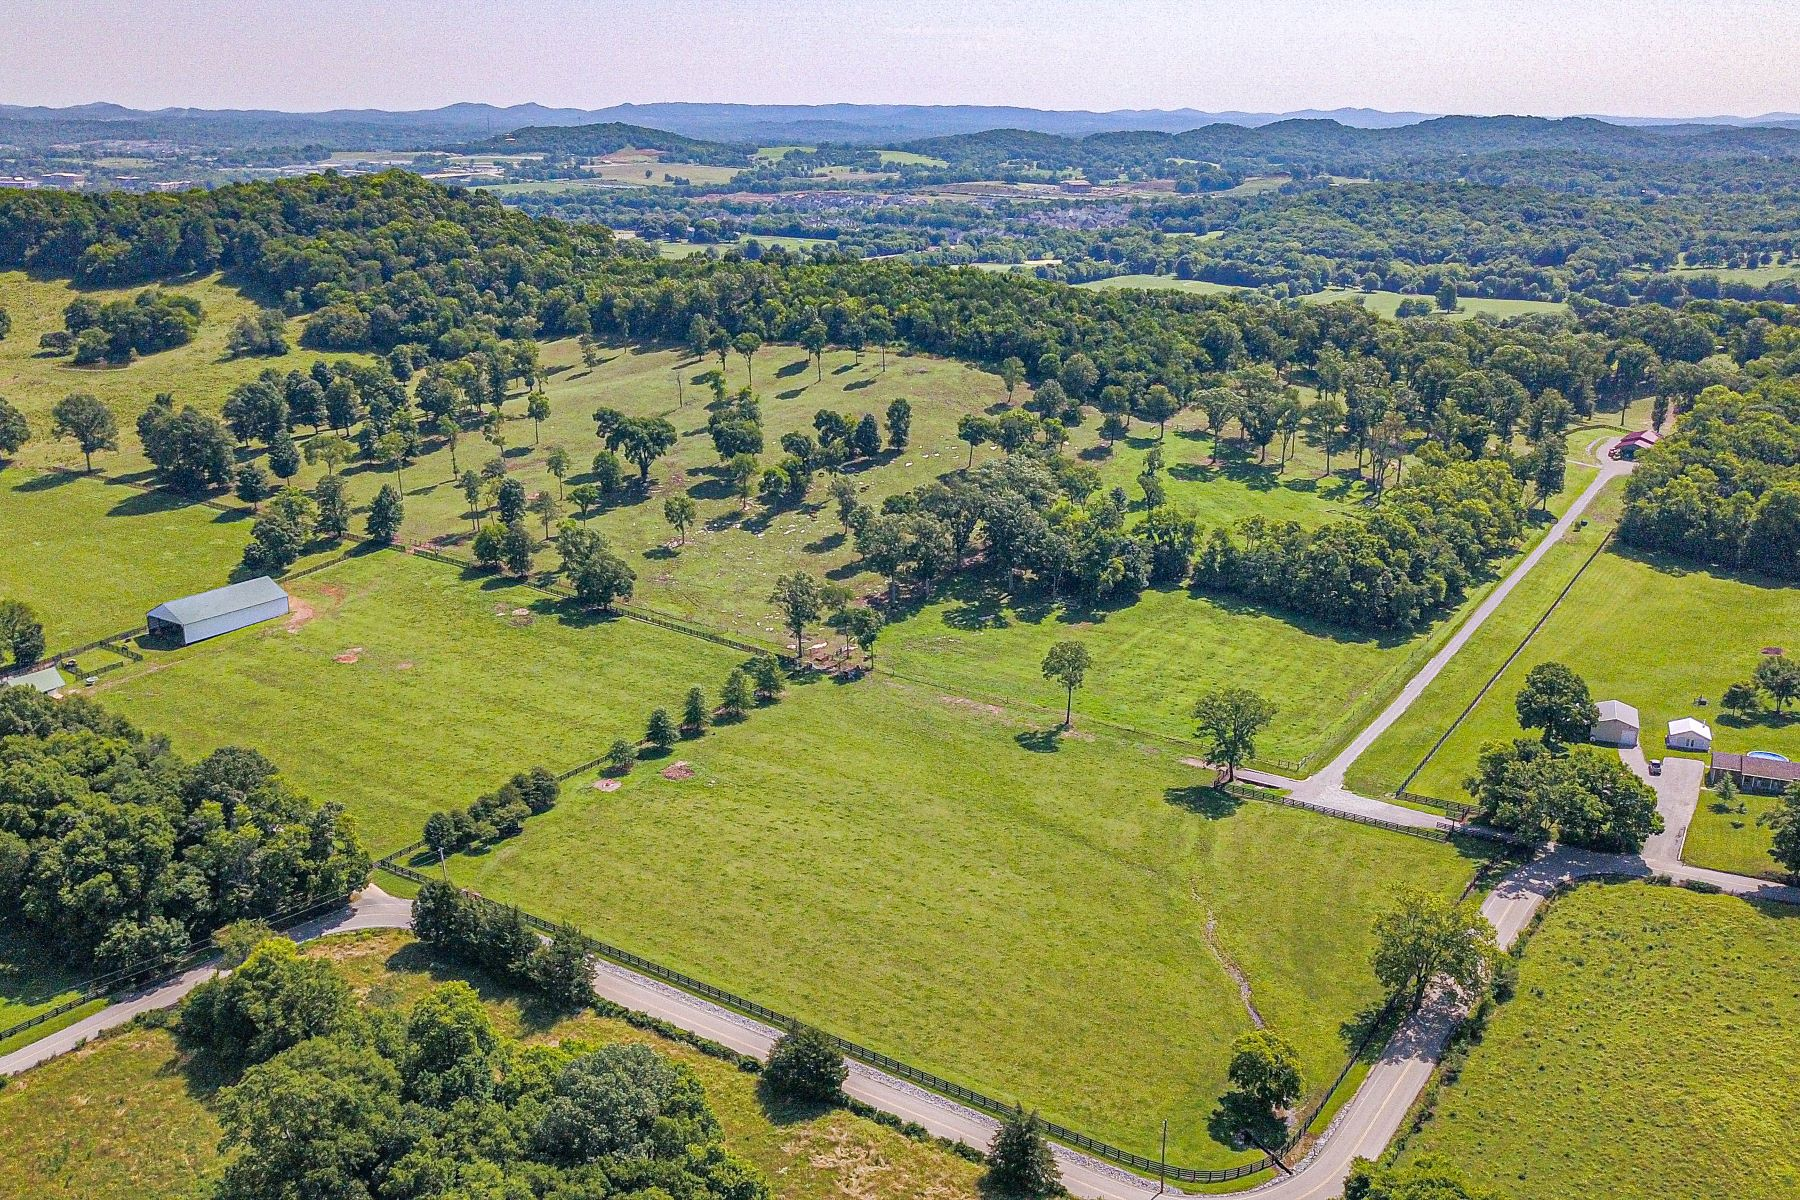 Ferme / Ranch / Plantation pour l Vente à Incredible Investment Opportunity in Franklin,Tennessee! 2704 McLemore Road, Franklin, Tennessee 37064 États-Unis